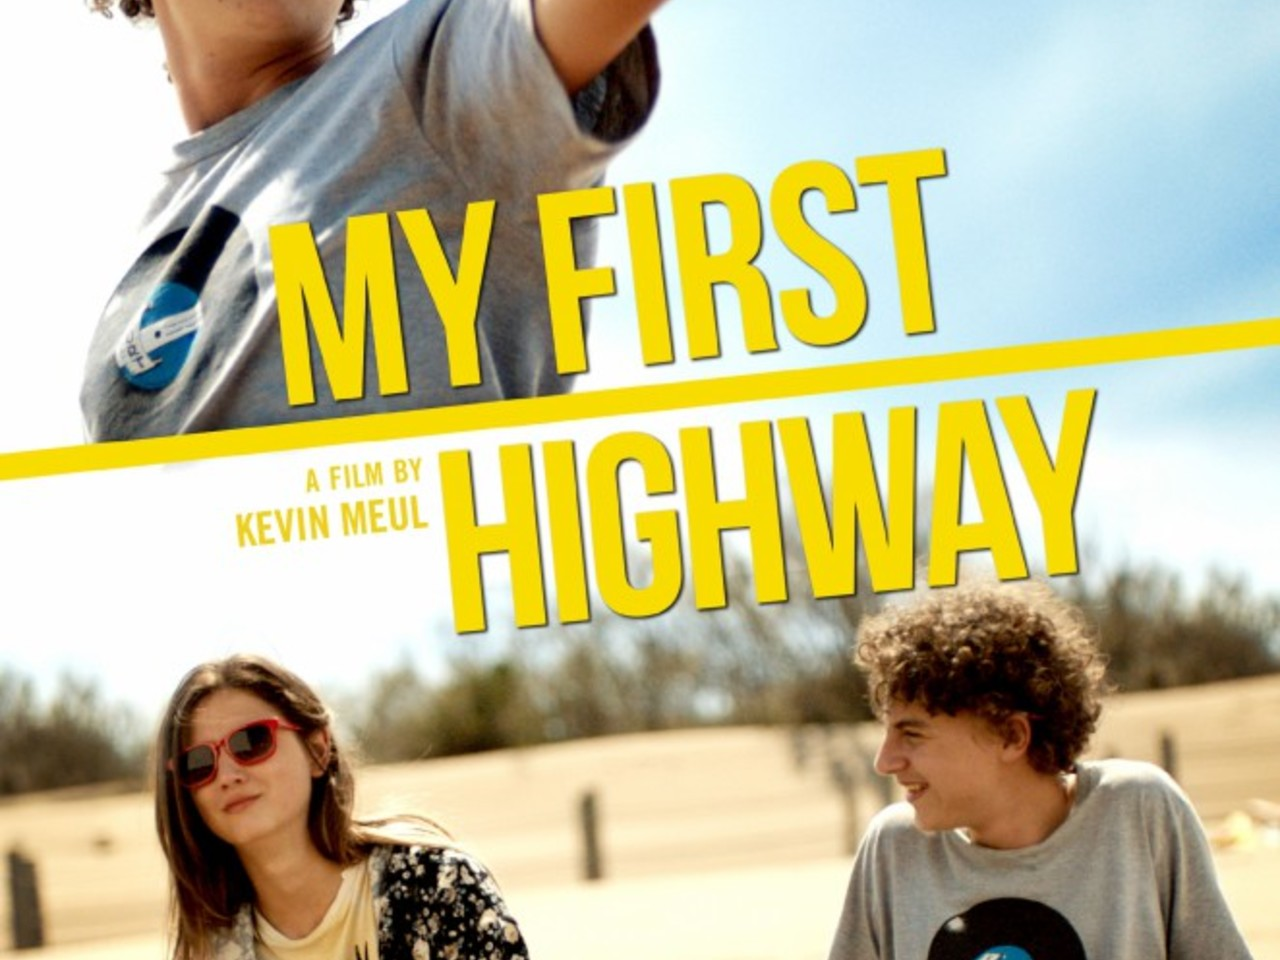 My First Highway